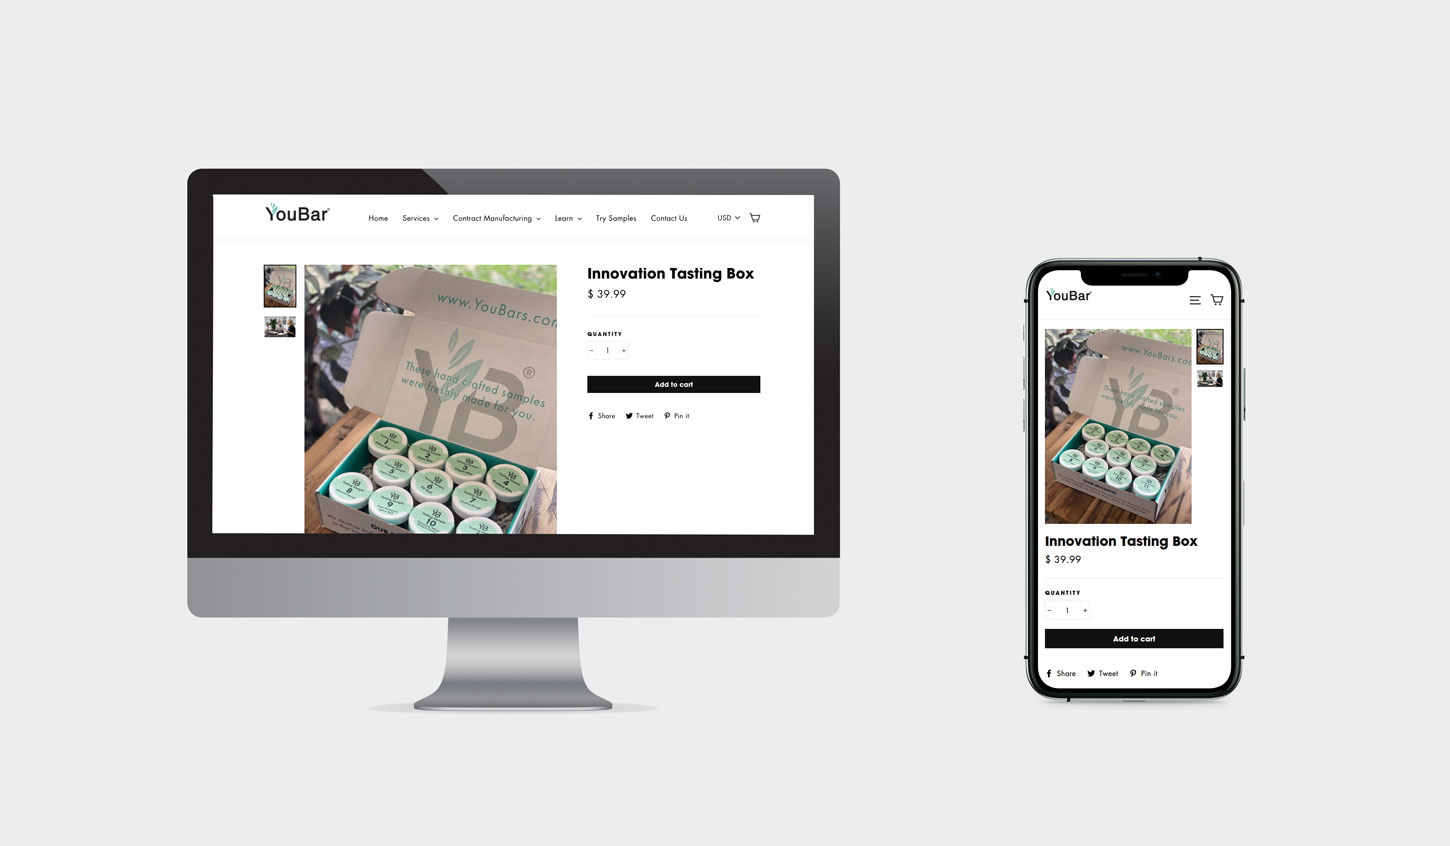 YouBar product page design